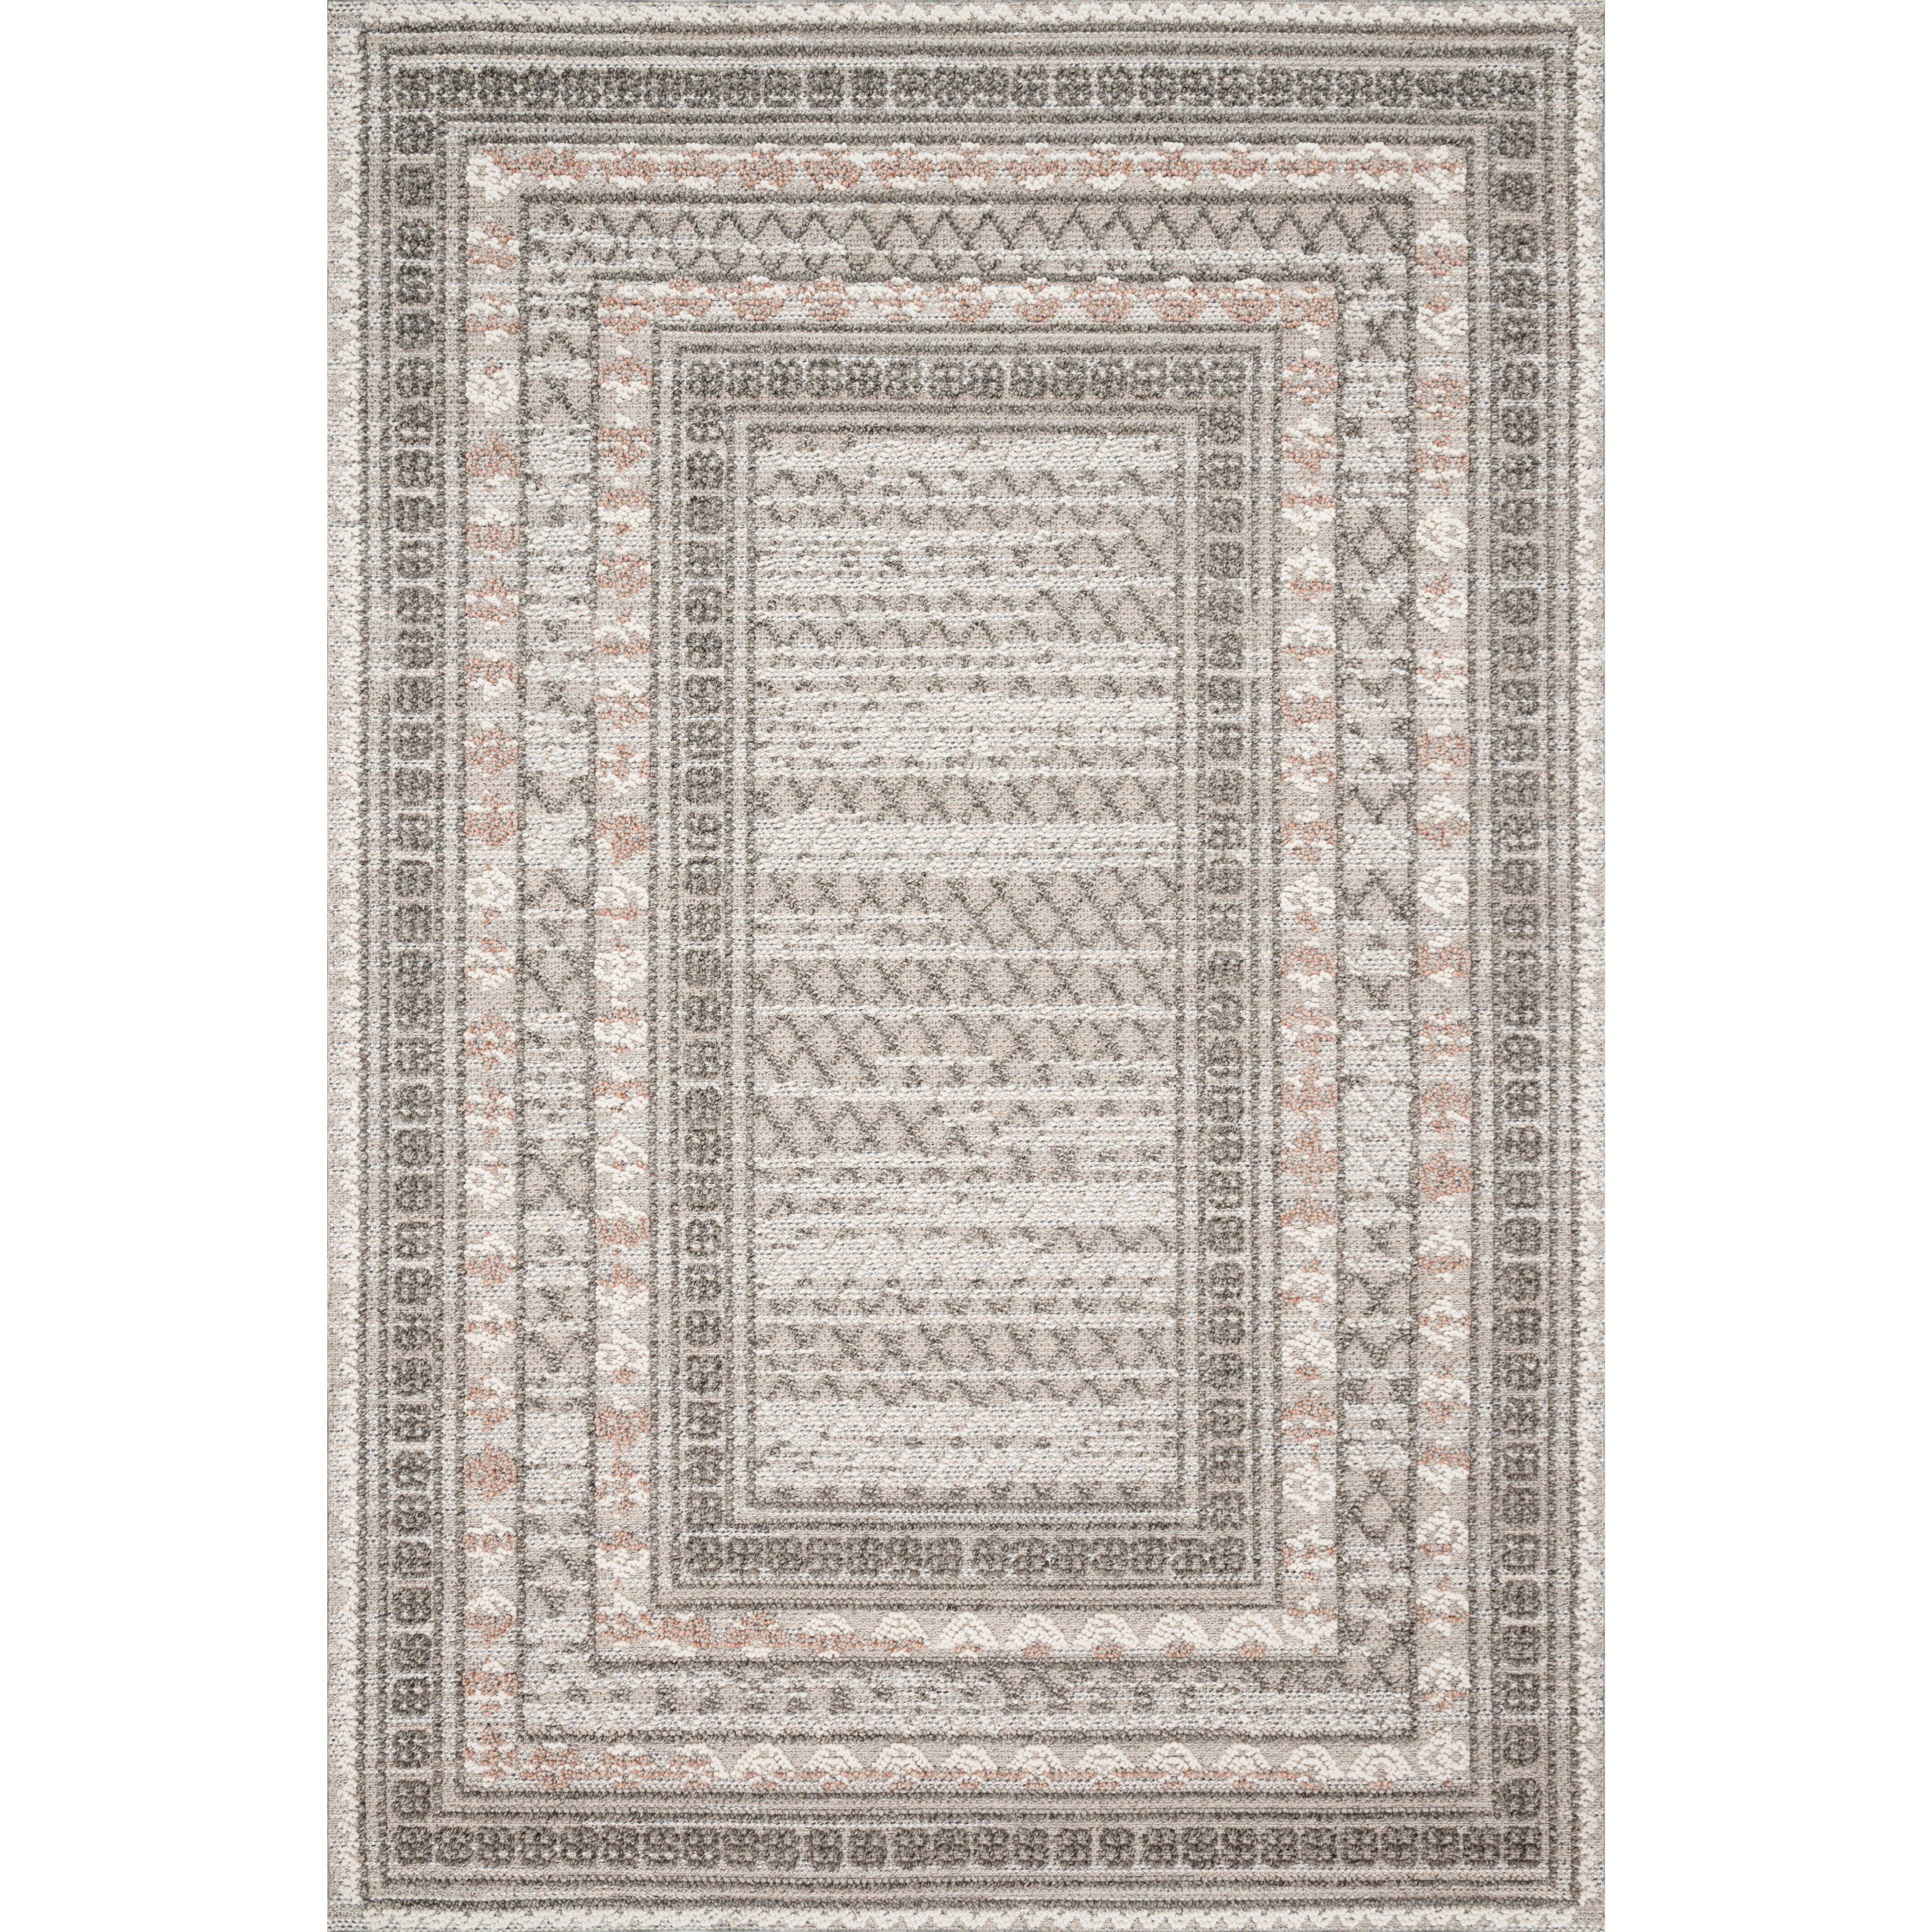 "Cole 2'7"" x 12'0"" Grey / Multi Rug by Loloi Rugs at Belfort Furniture"